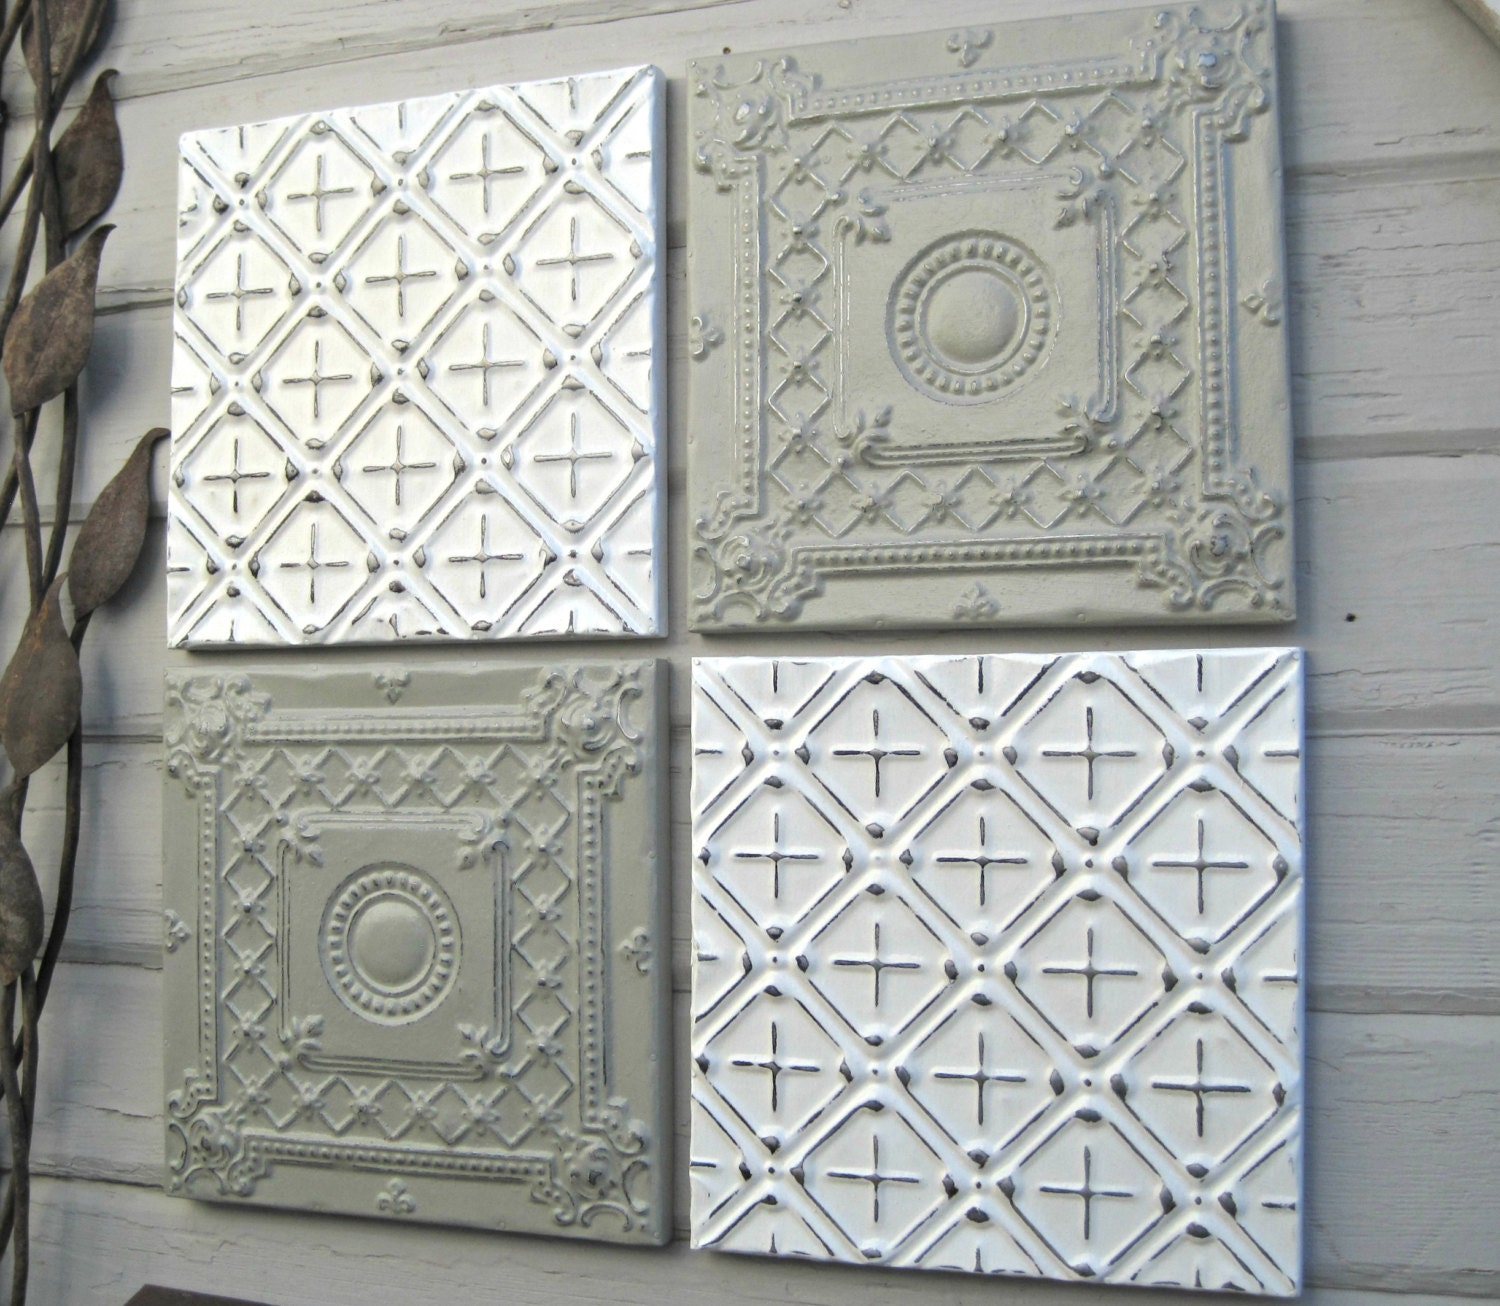 Tin ceiling tile set of 4 12 x 12 framed tiles by for Individual ceiling tiles for sale